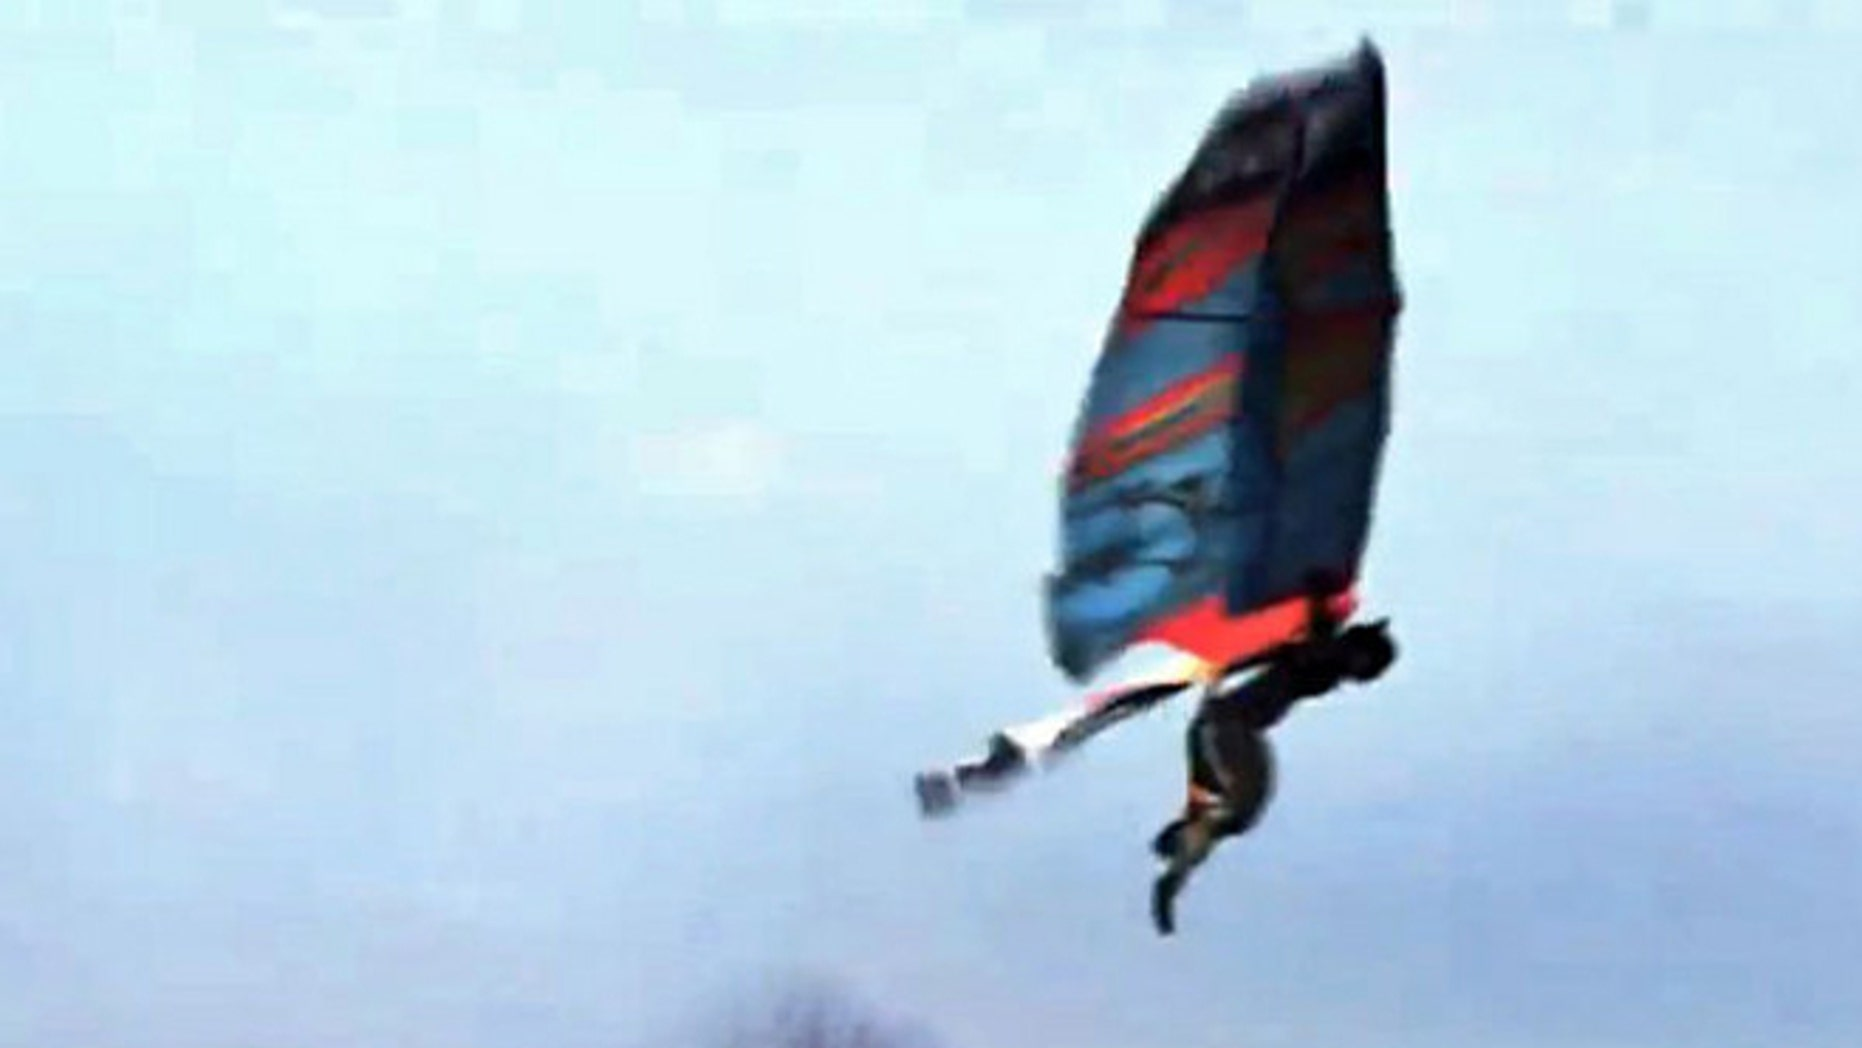 A video purportedly shows a man using homemade wings to soar like a bird. Experts suggest the video is a hoax, however -- a marketing campaign for Nintendo.